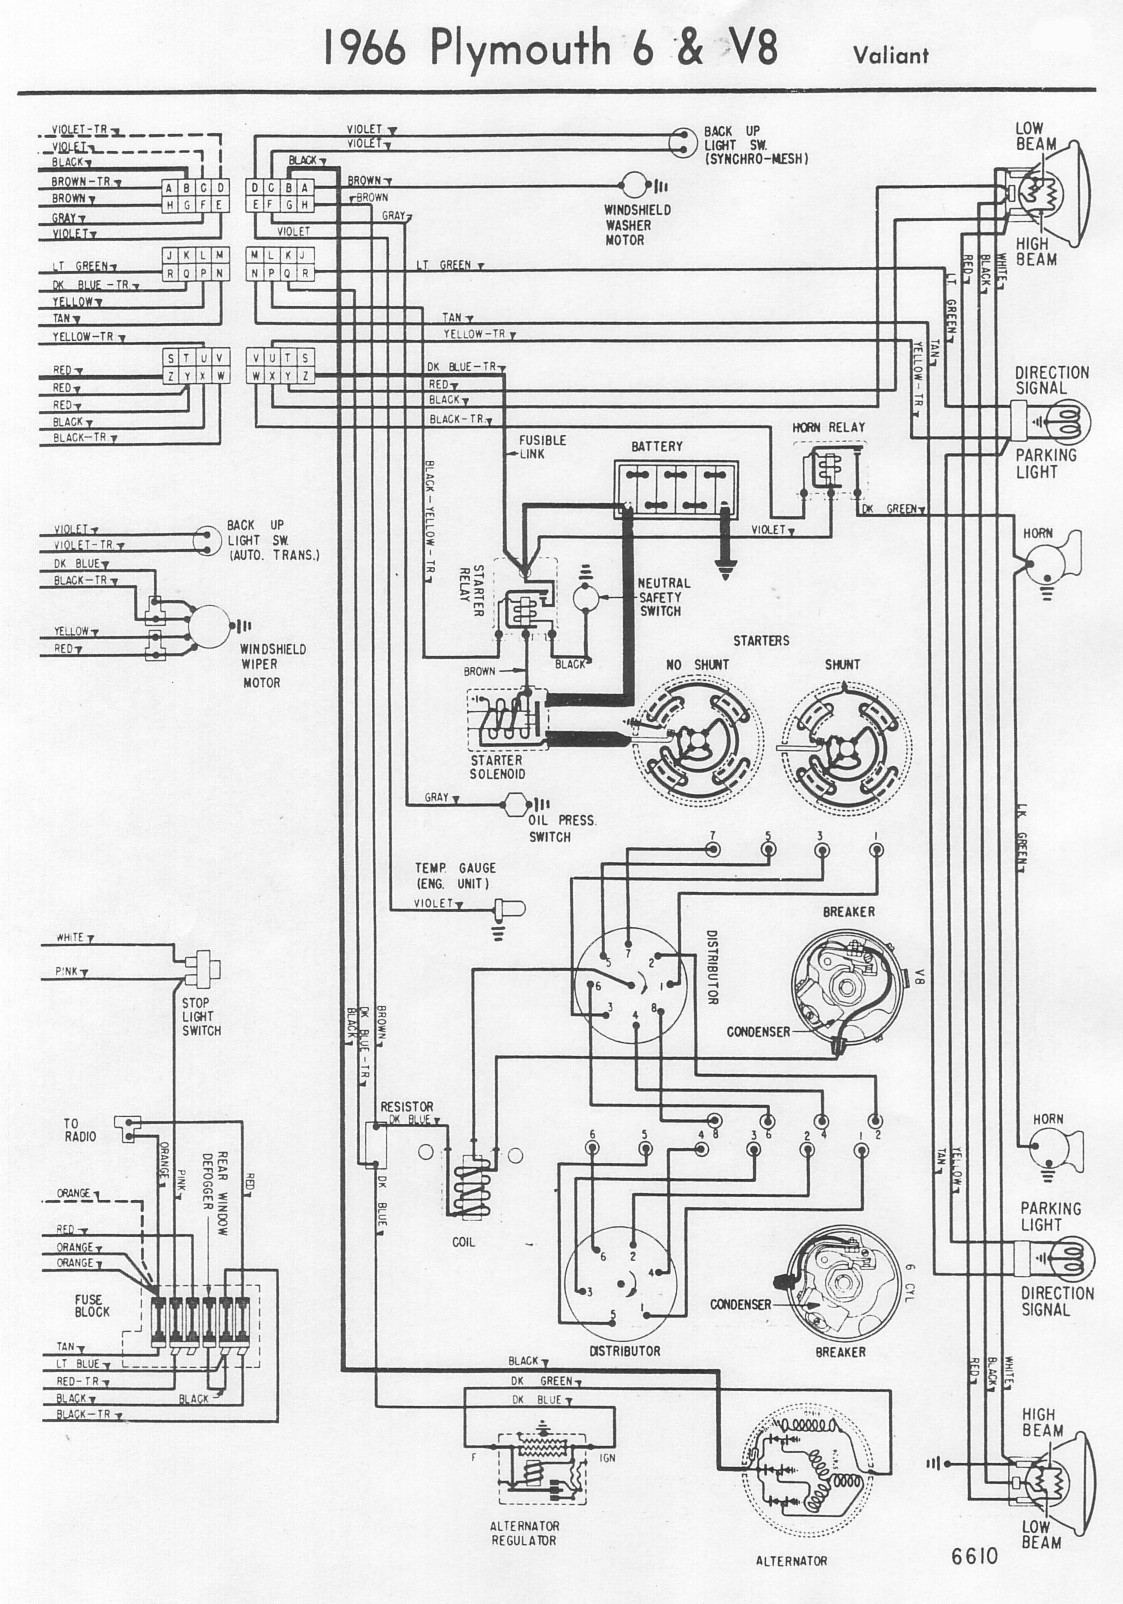 Wiring Diagram For 1965 Plymouth Valiant Library 1970 Impala Harness Diagrams